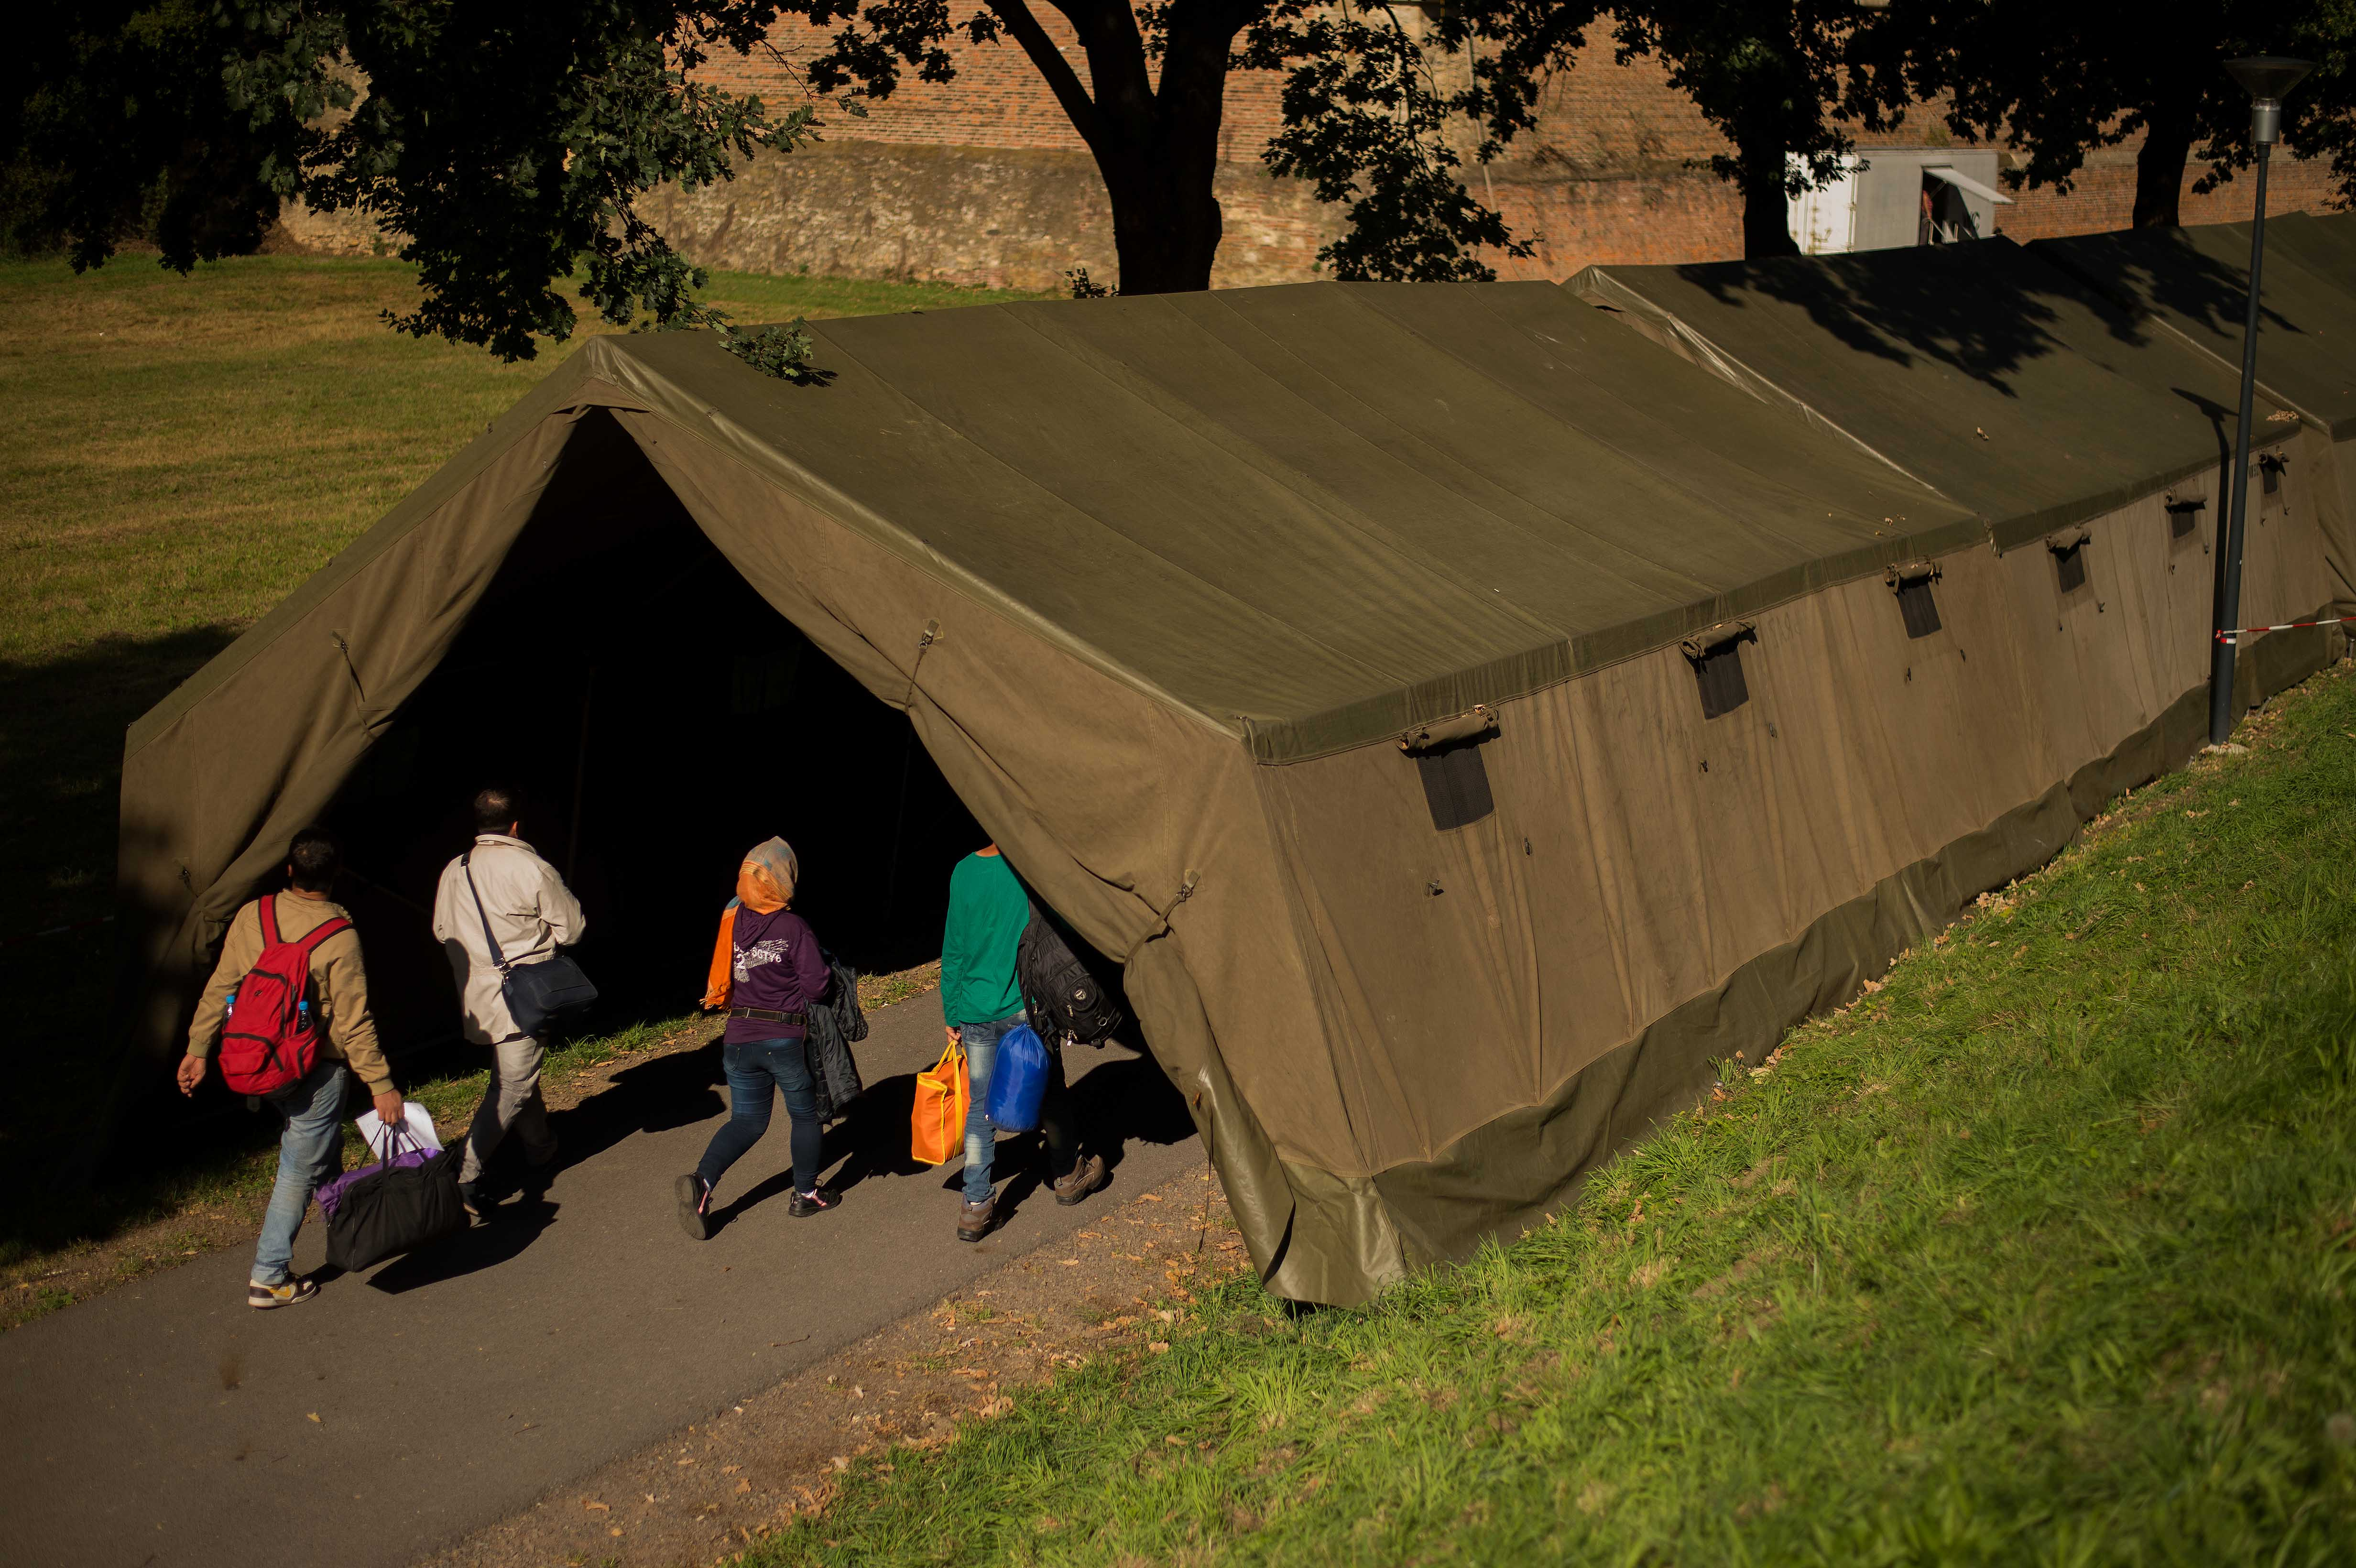 Migrants walk into a makeshift camp after registration  in Bad Radkersburg, Austria, about 210 kms (130 miles) south of Vienna, Austria, Sept. 21, 2015.